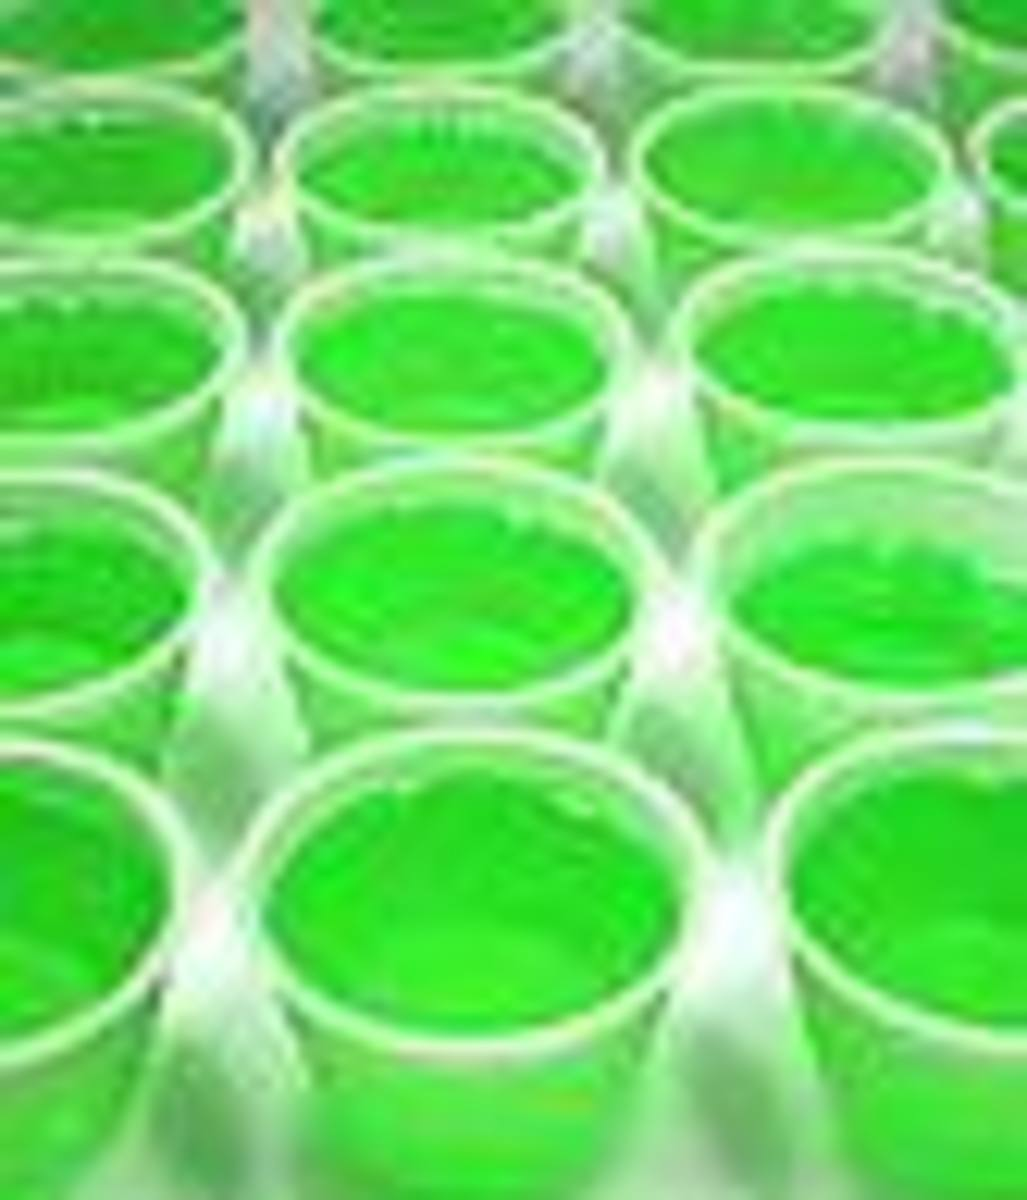 How To Make St. Paddy's Day Jello Shots